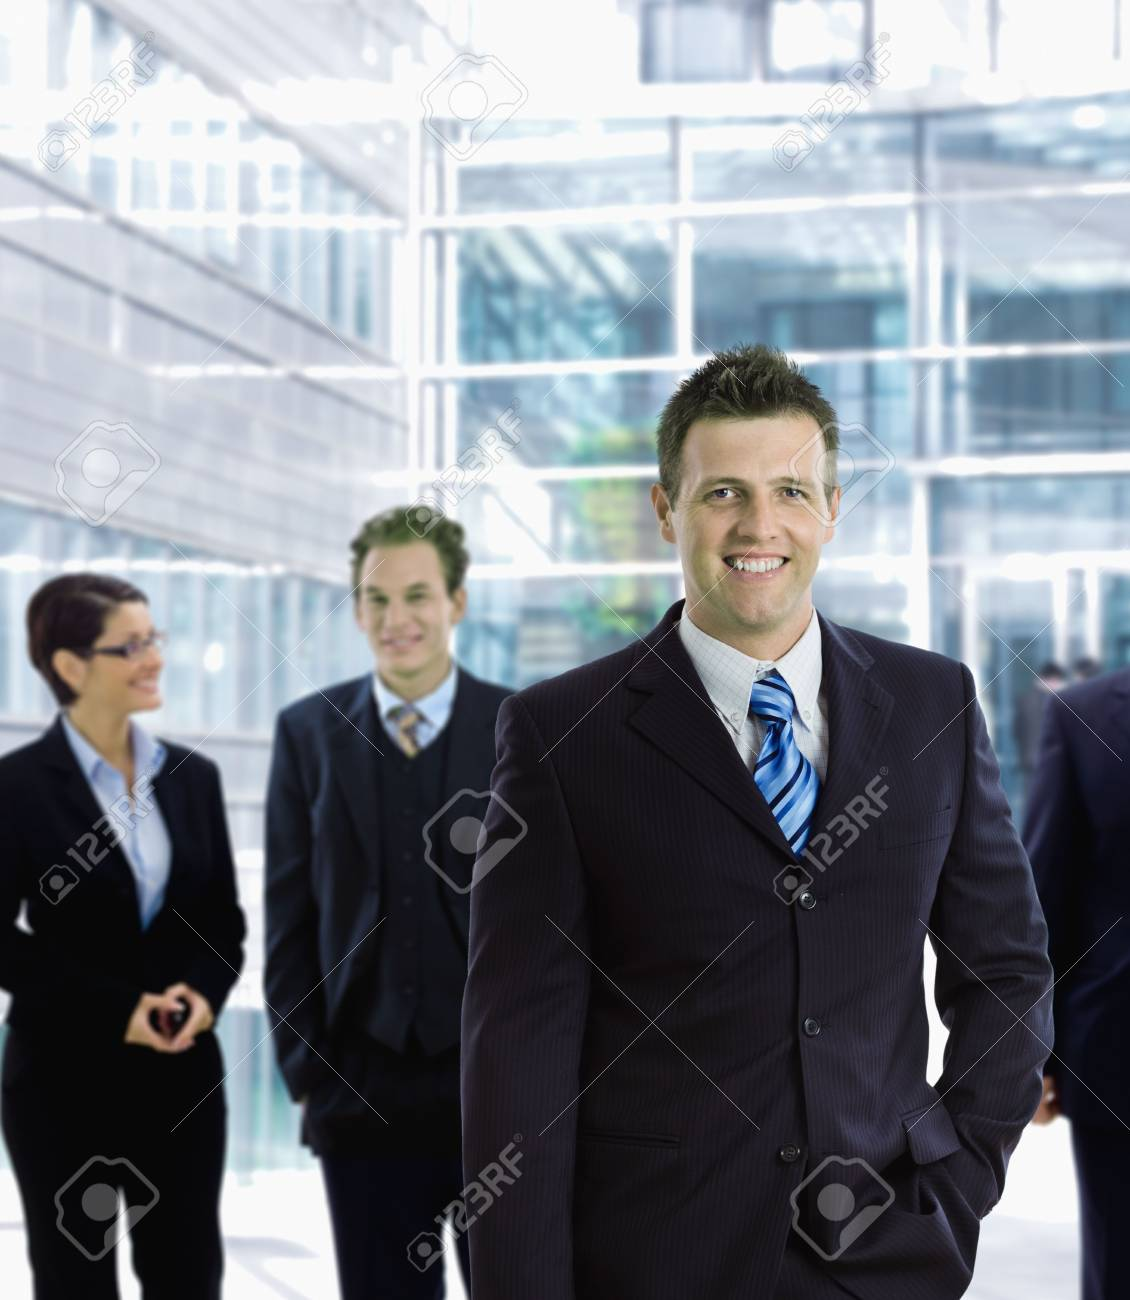 Happy businessman standing in front of other businesspeople, out of office building, smiling. Stock Photo - 6438115